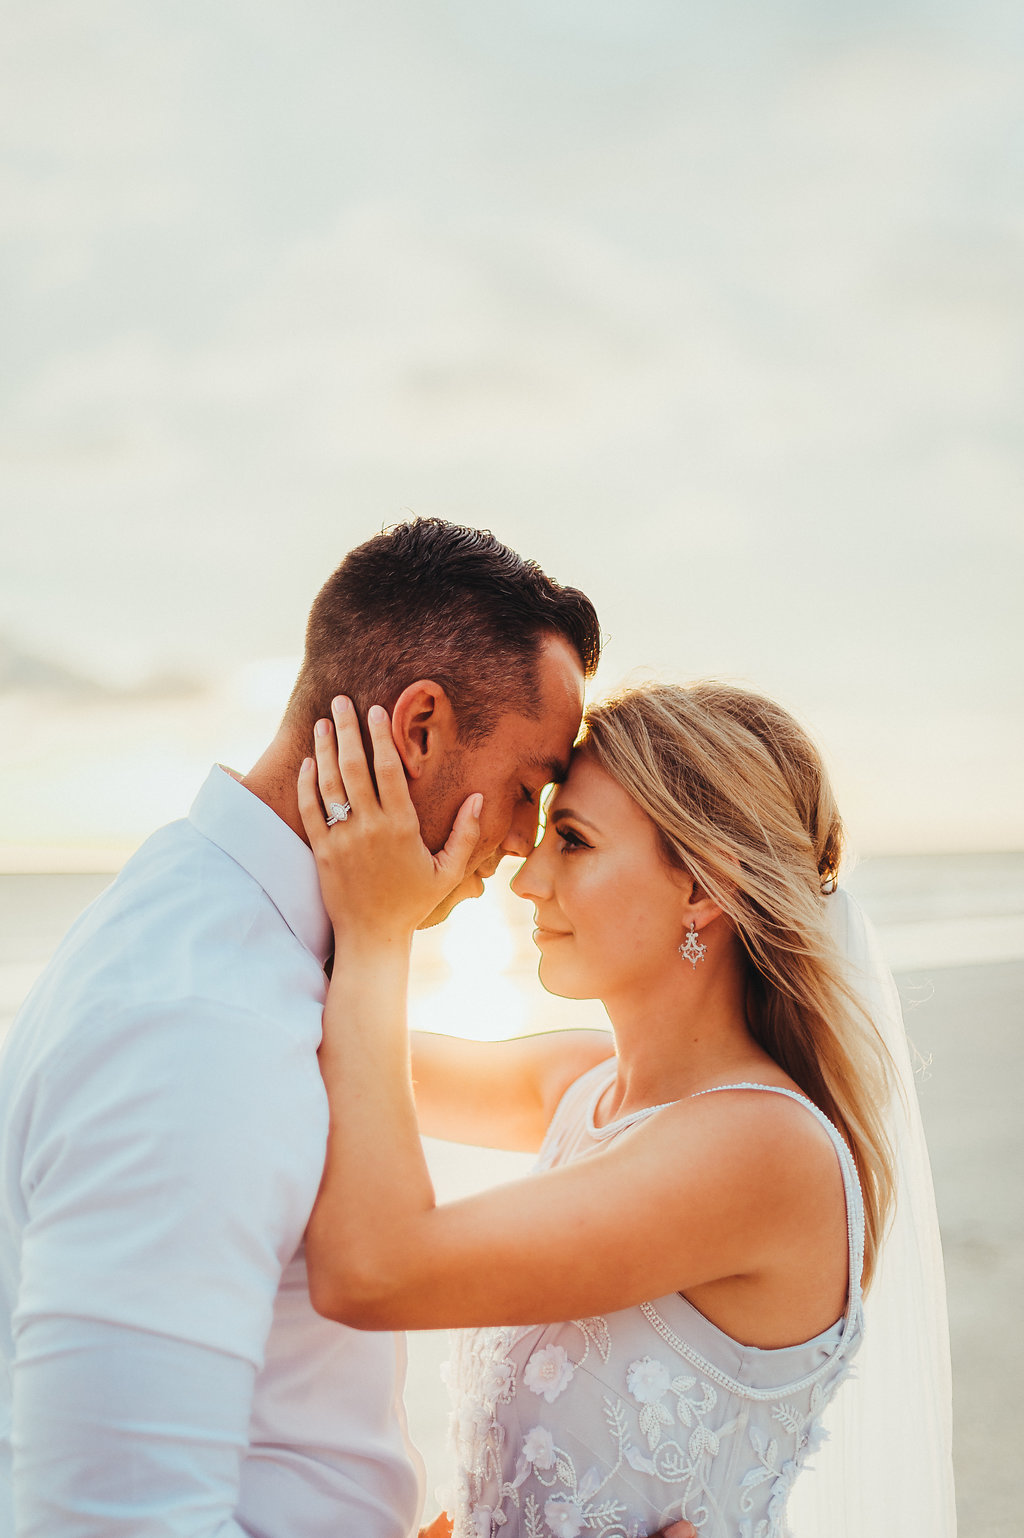 Coastal, Redington Beach Waterfront Sunset Bride and Groom Wedding Portrait, Bride in Sleeveless Illusion Neckline Floral Overlay and Light Blue Wedding Dress with Tulle Skirt and Veil